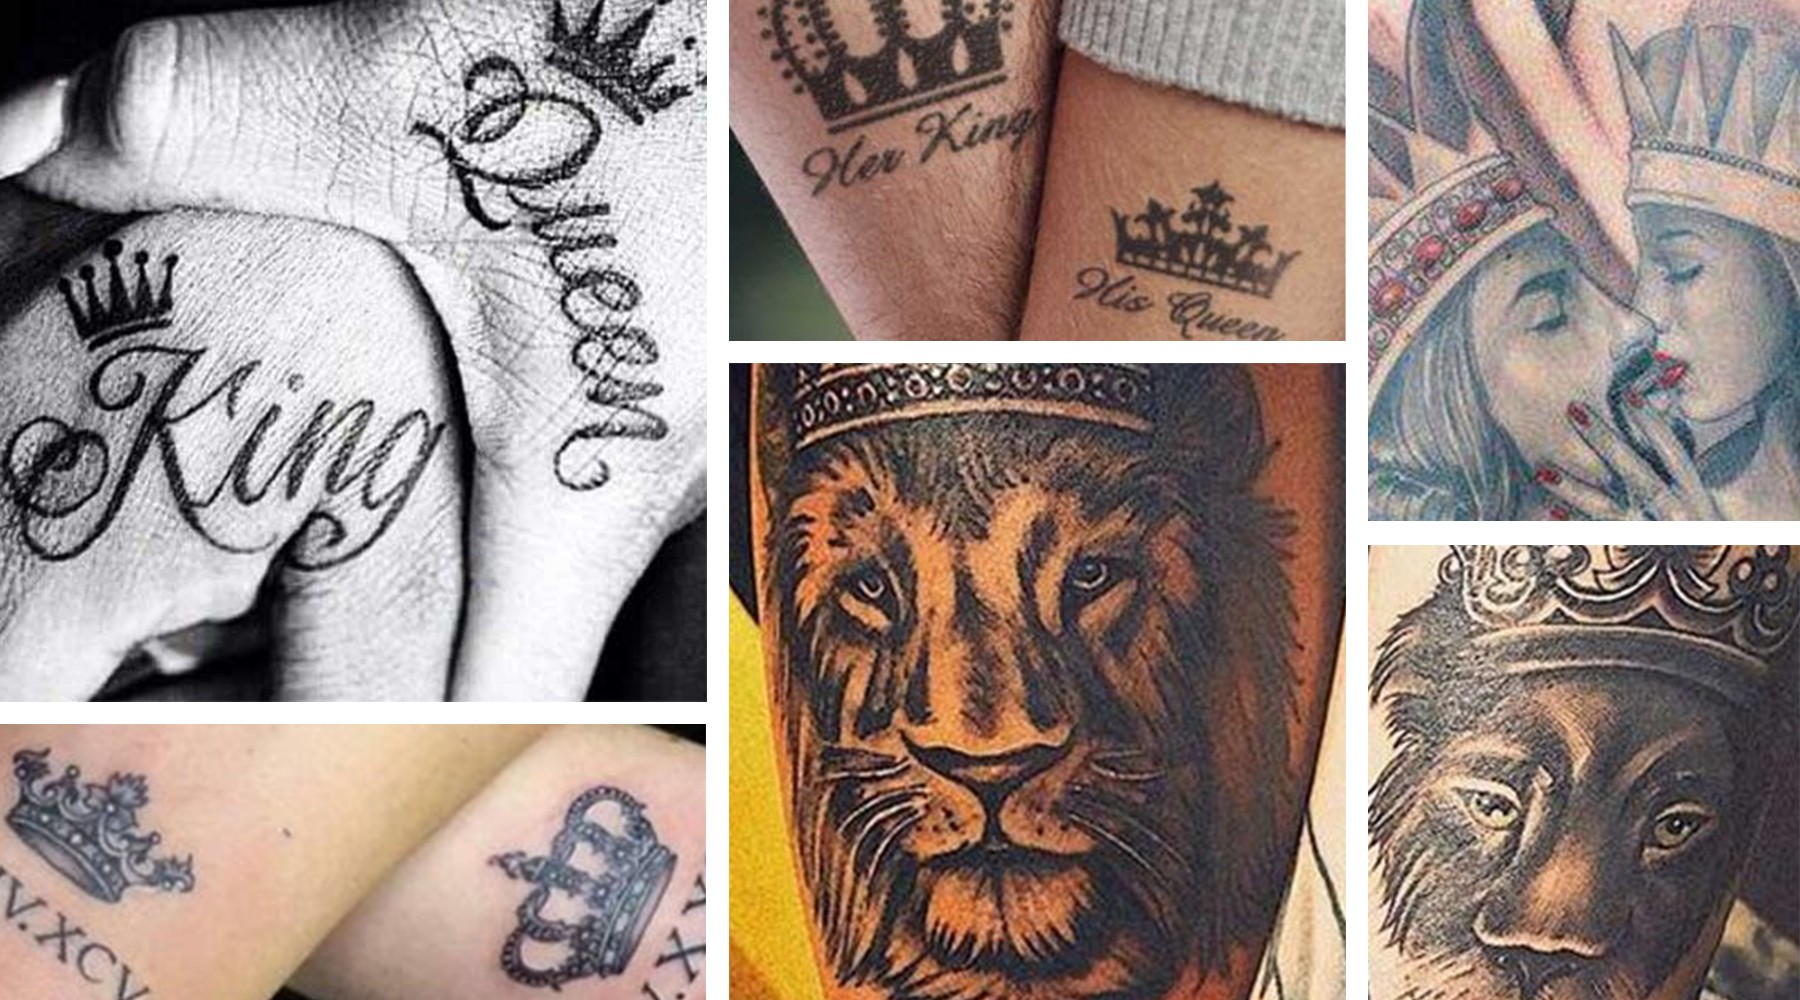 King and queen tattoos are a popular way for couples to showcase their love, but these tattoos aren't strictly for people in relationships. Many women sport queen tattoos to symbolize their independen...